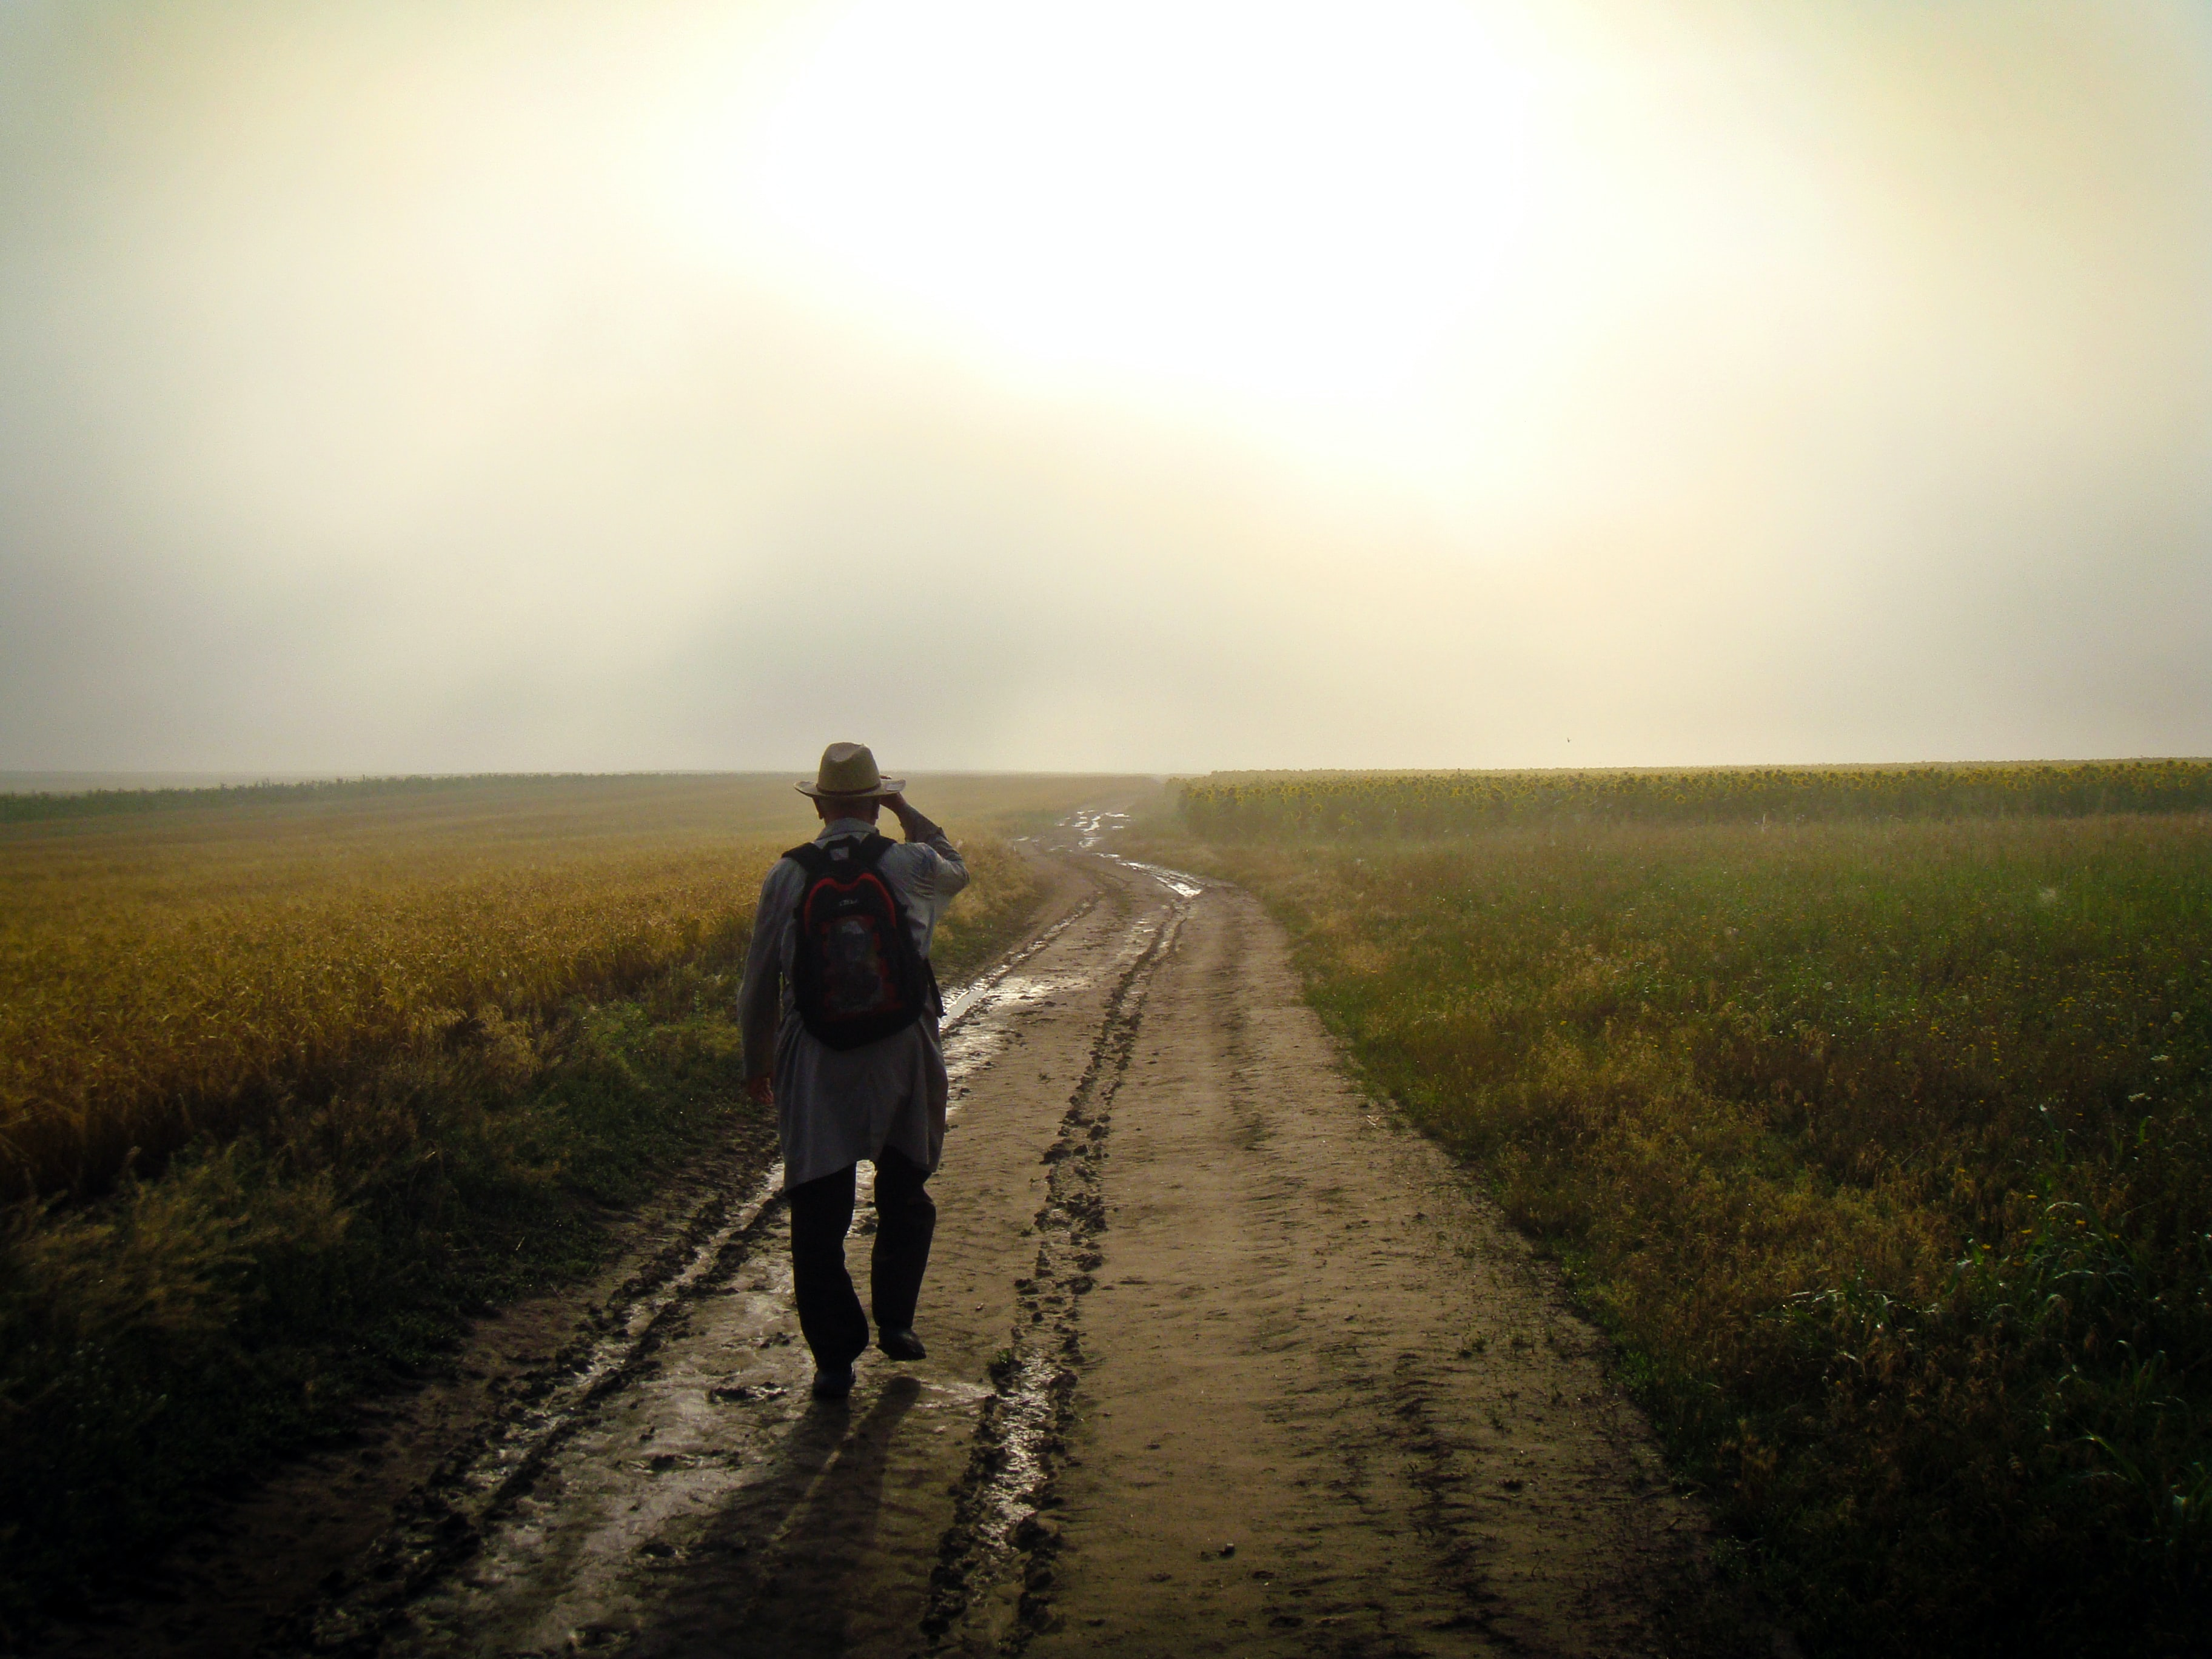 Person walks alone on a rural trail through the countryside